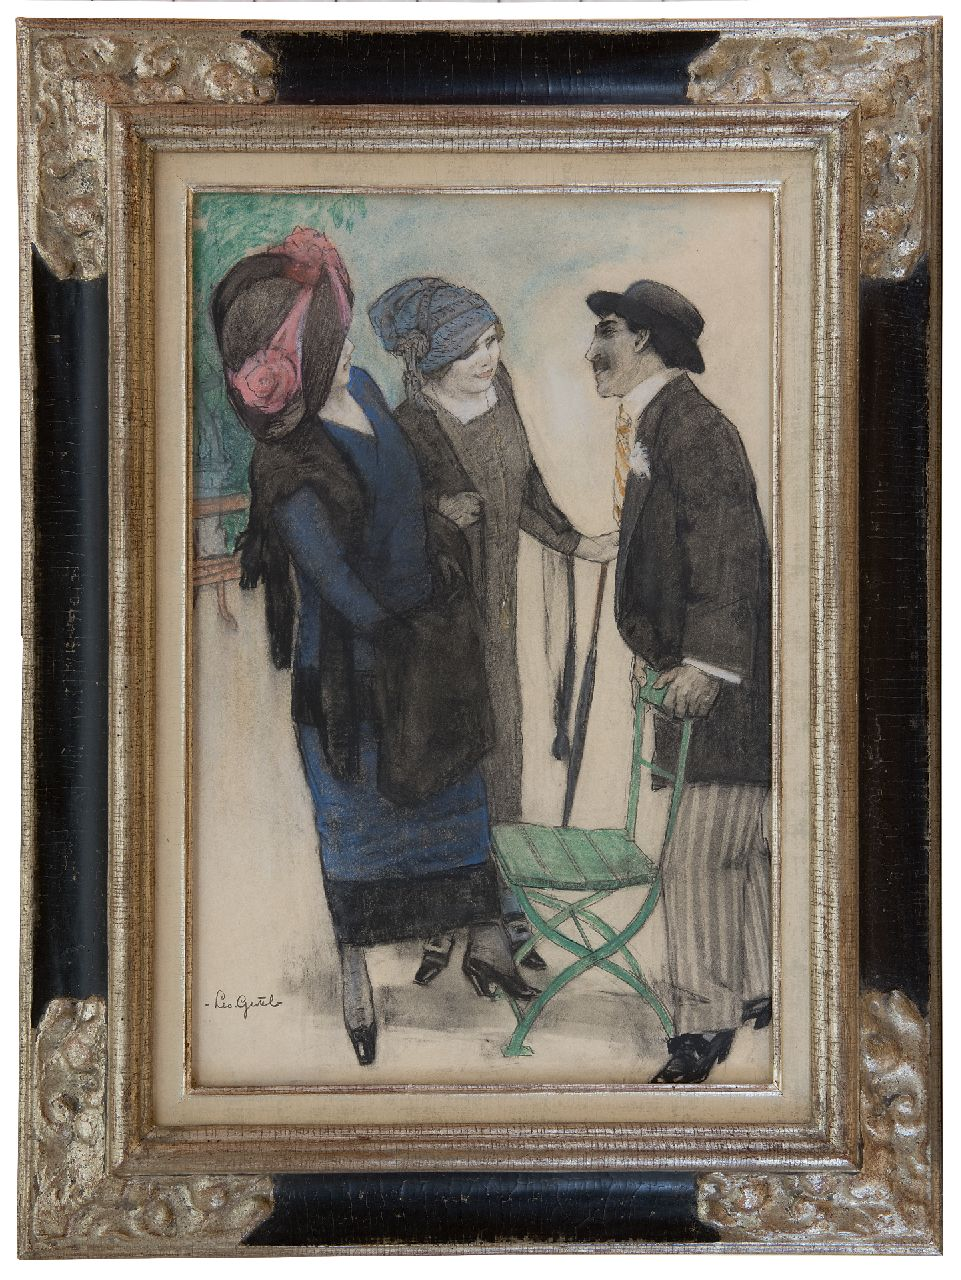 Gestel L.  | Leendert 'Leo' Gestel | Watercolours and other works on paper offered for sale | Conversation in the park, charcoal and pastel on paper 50.1 x 33.4 cm, signed l.l. and executed ca. 1910